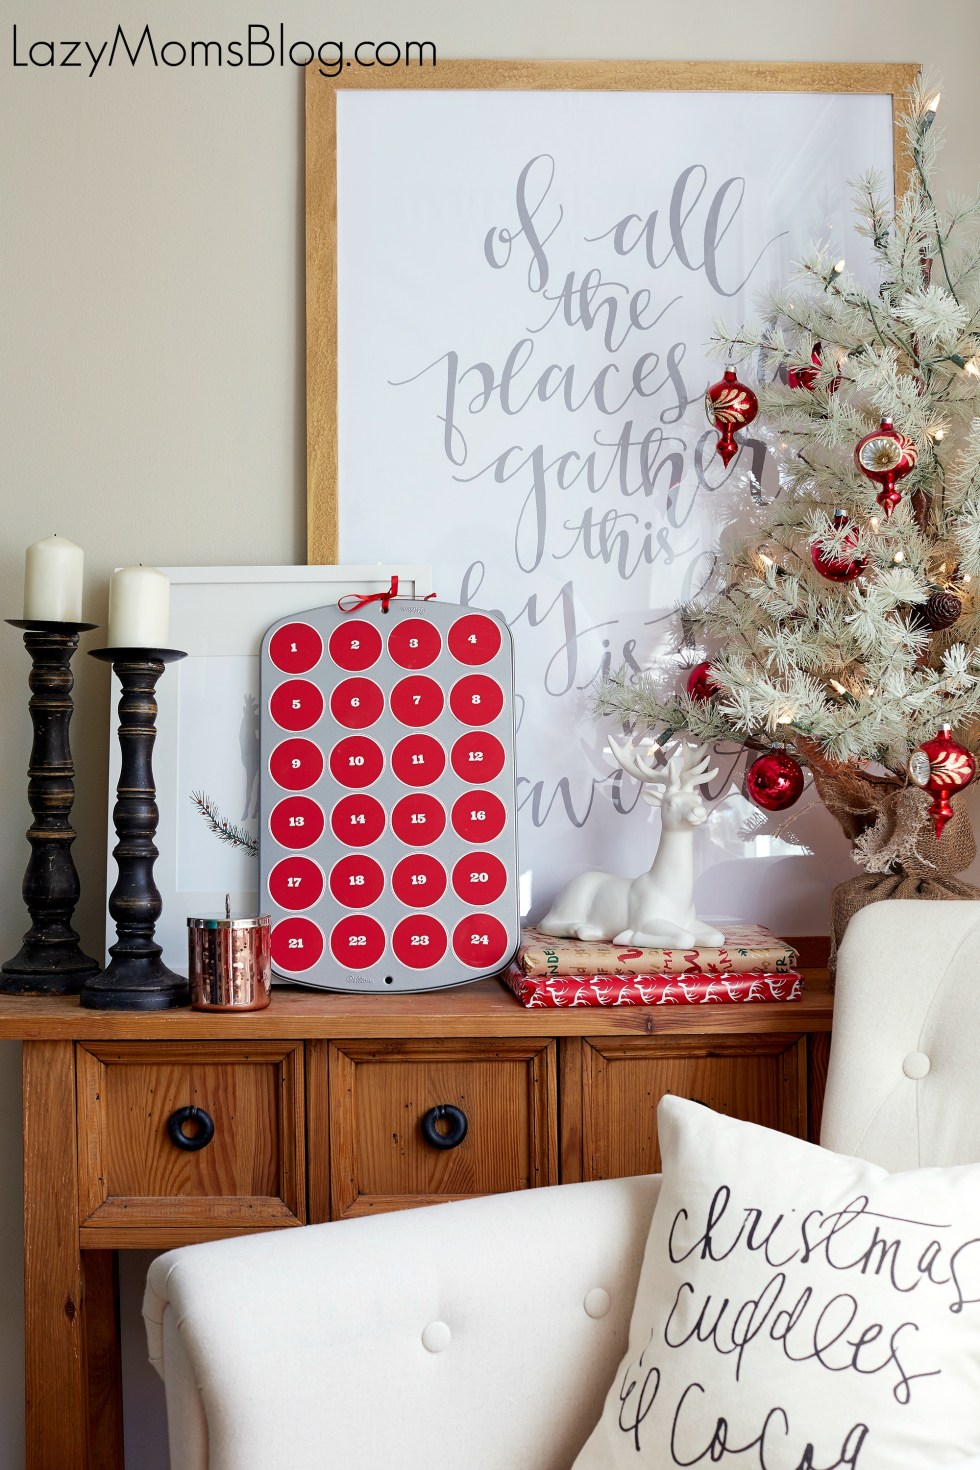 This easy DIY advent calendar is a great way of adding some festive cheer to your everyday! Come grab a free printable to make your own easy advent calendar